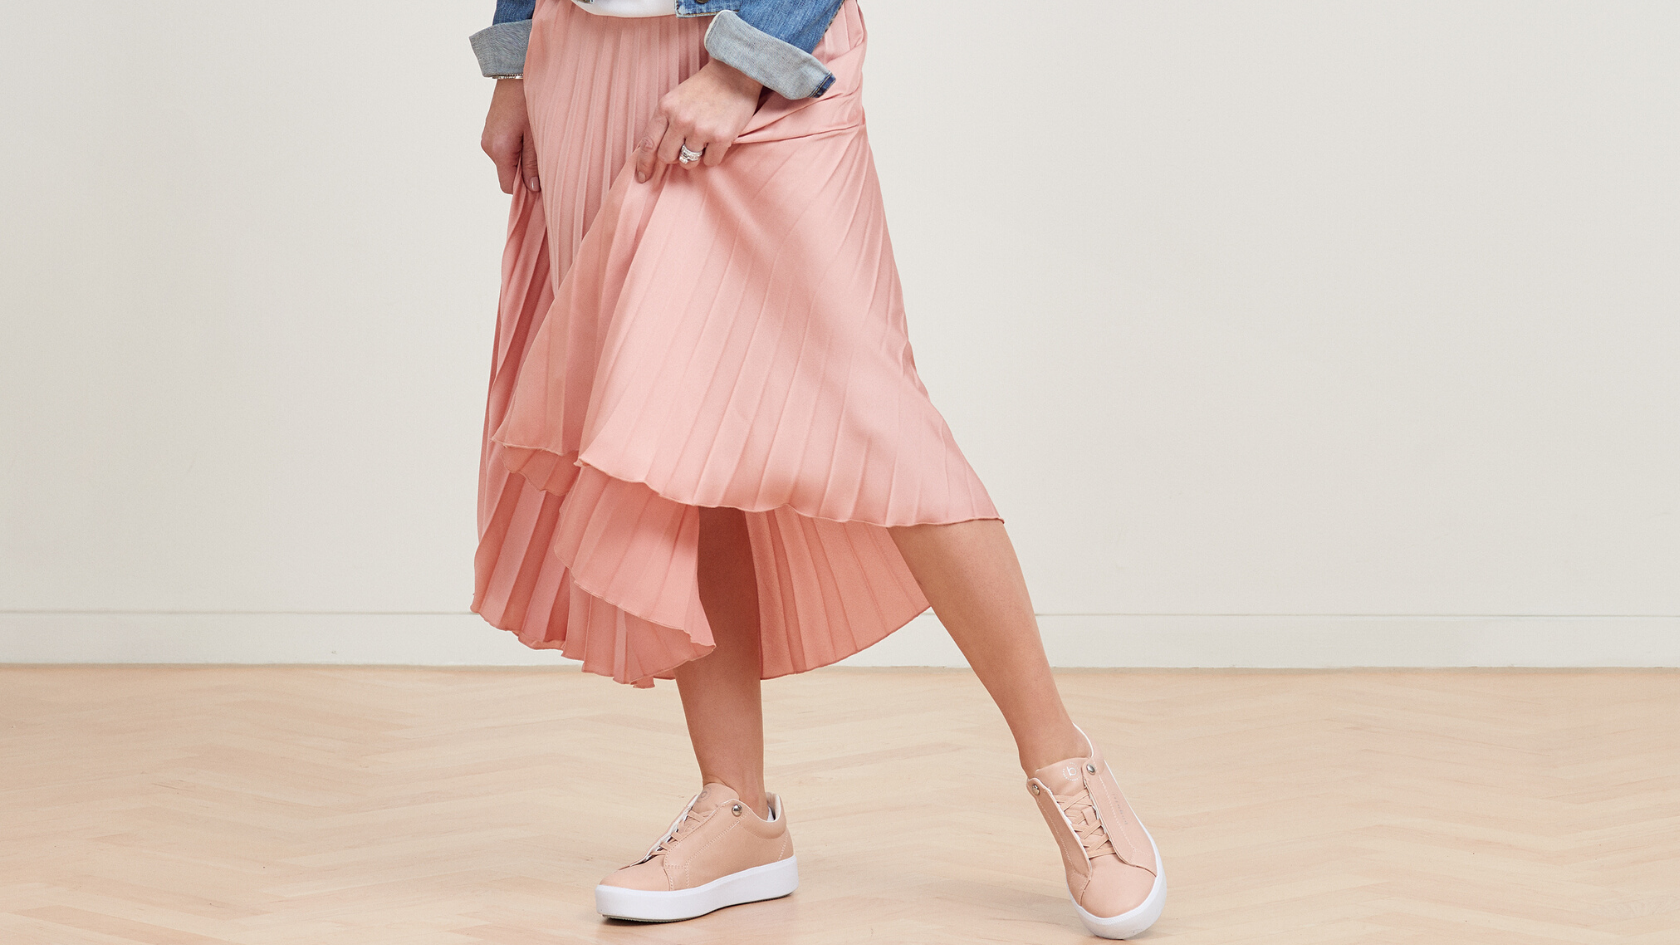 Lady posing in her pink rippled skirt with her pink bugatti sneakers in front of a neutral background